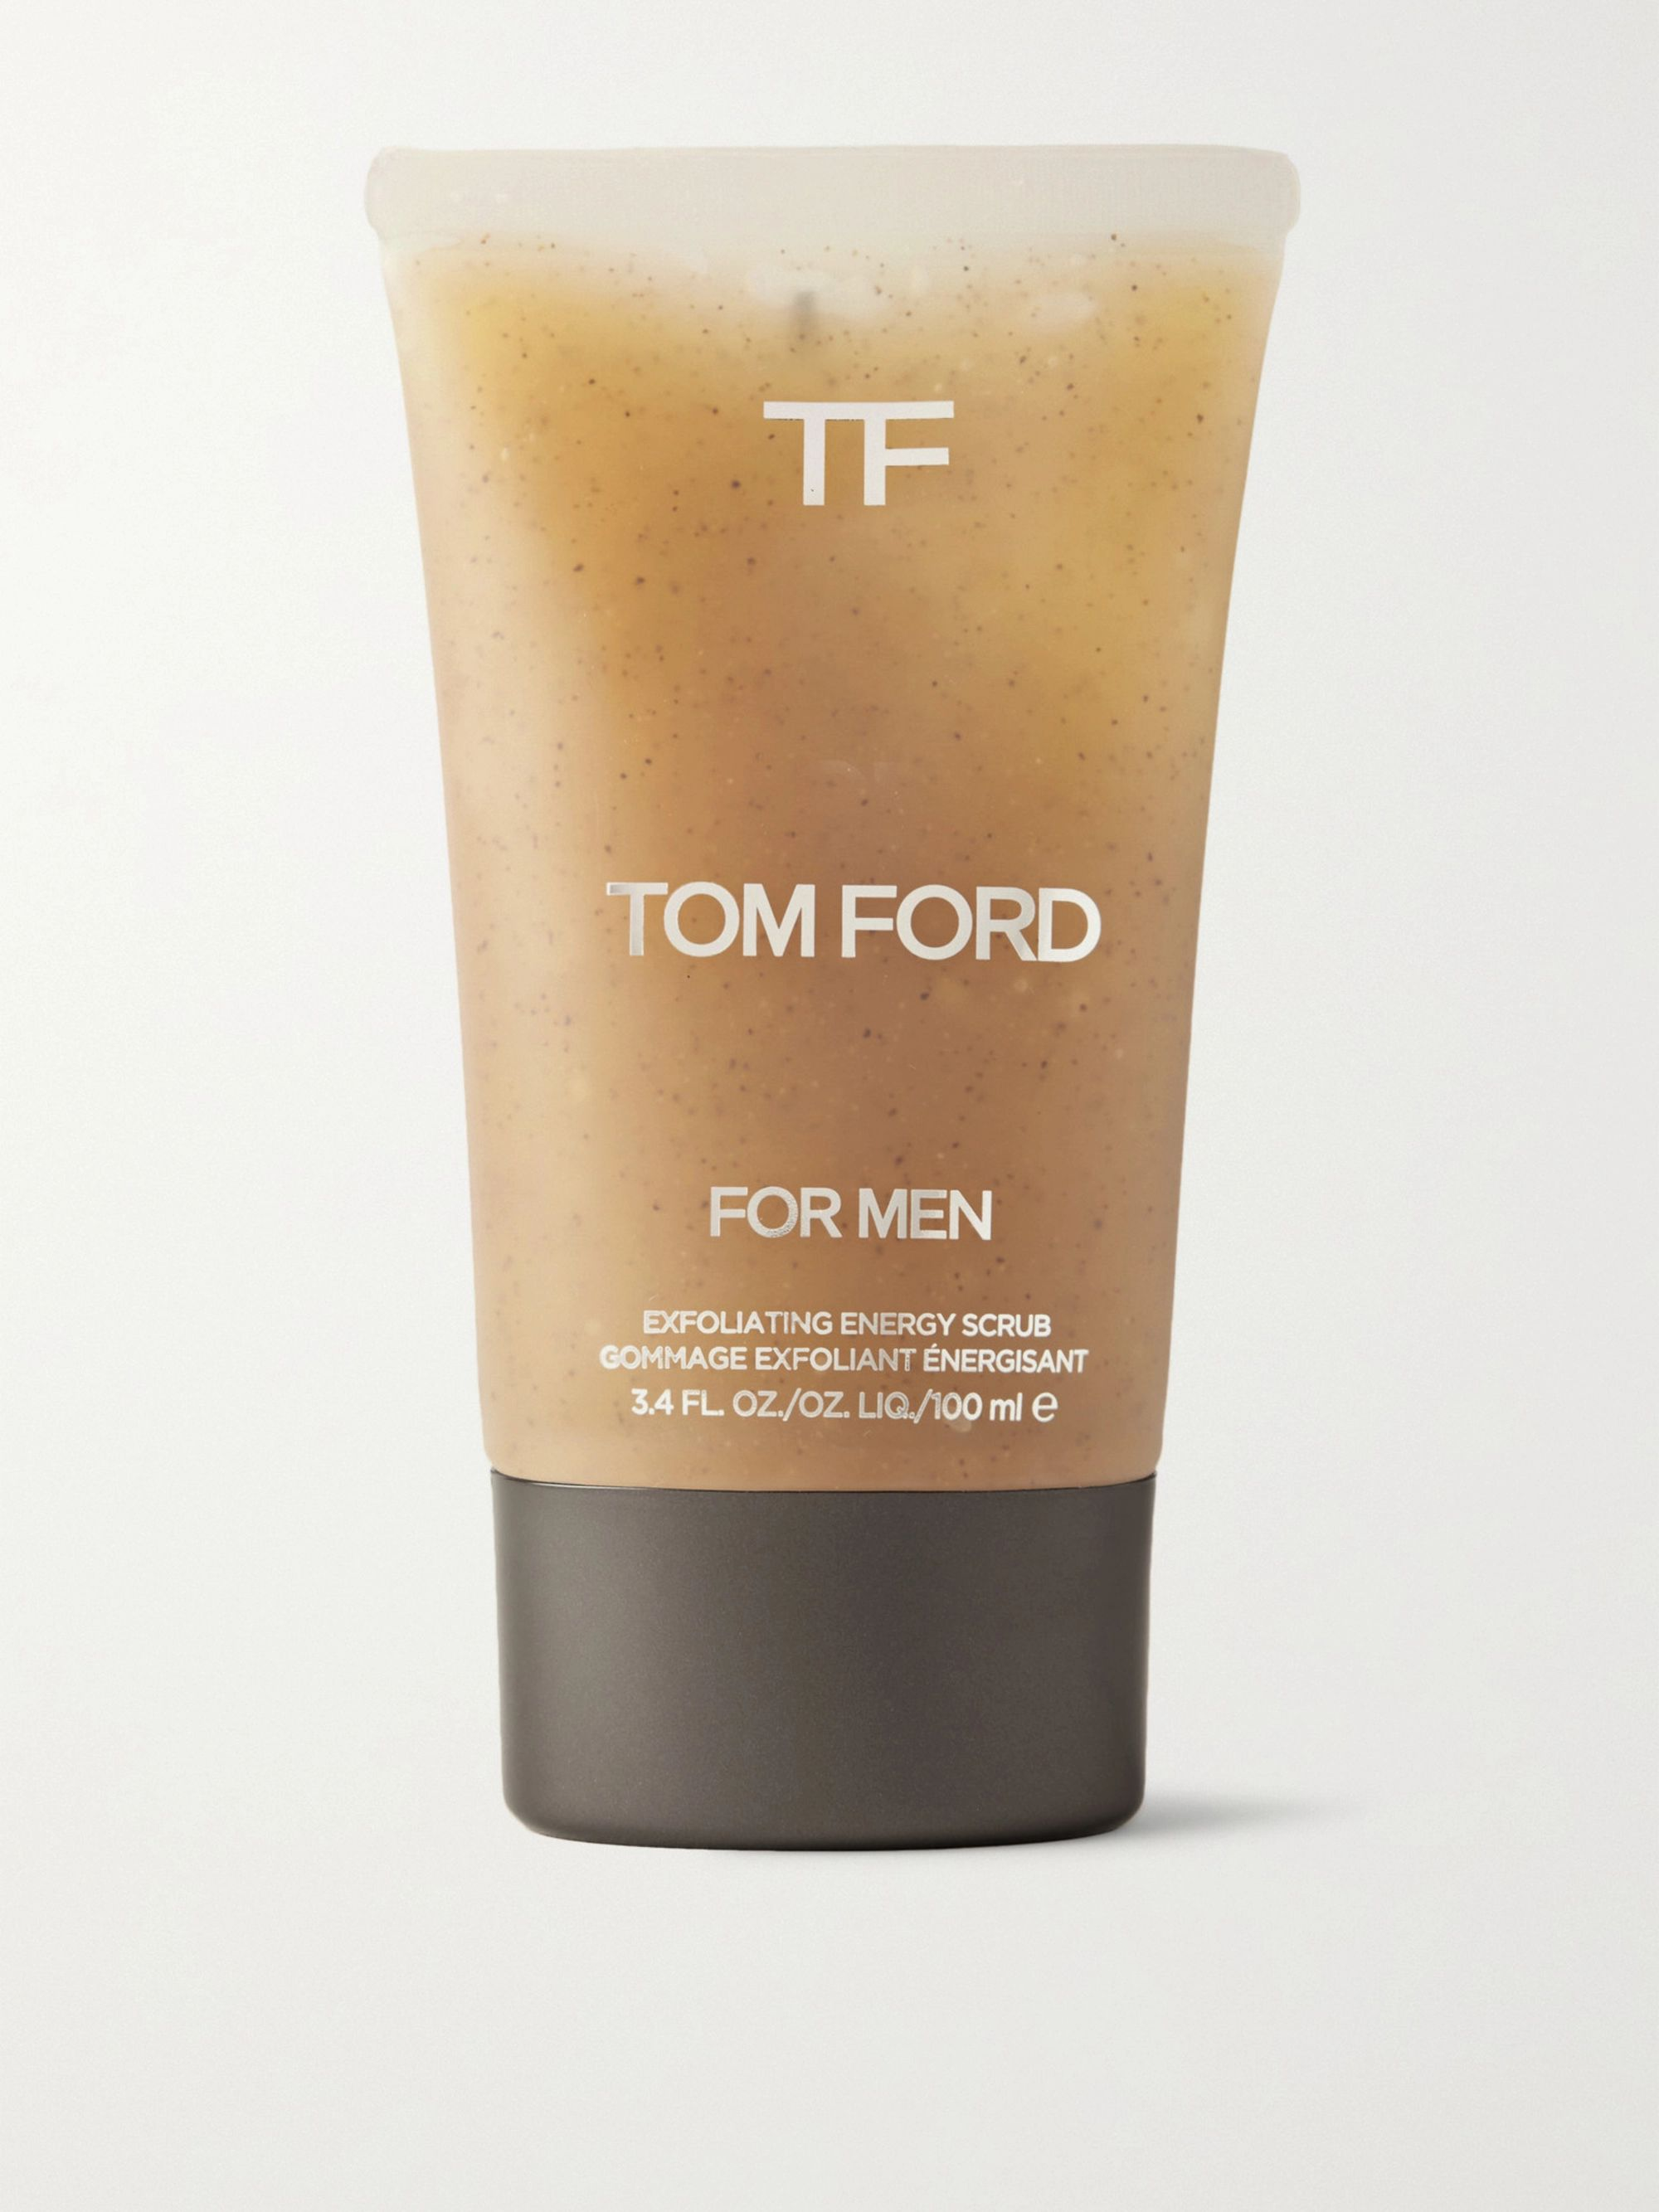 TOM FORD BEAUTY Exfoliating Energy Scrub, 100ml